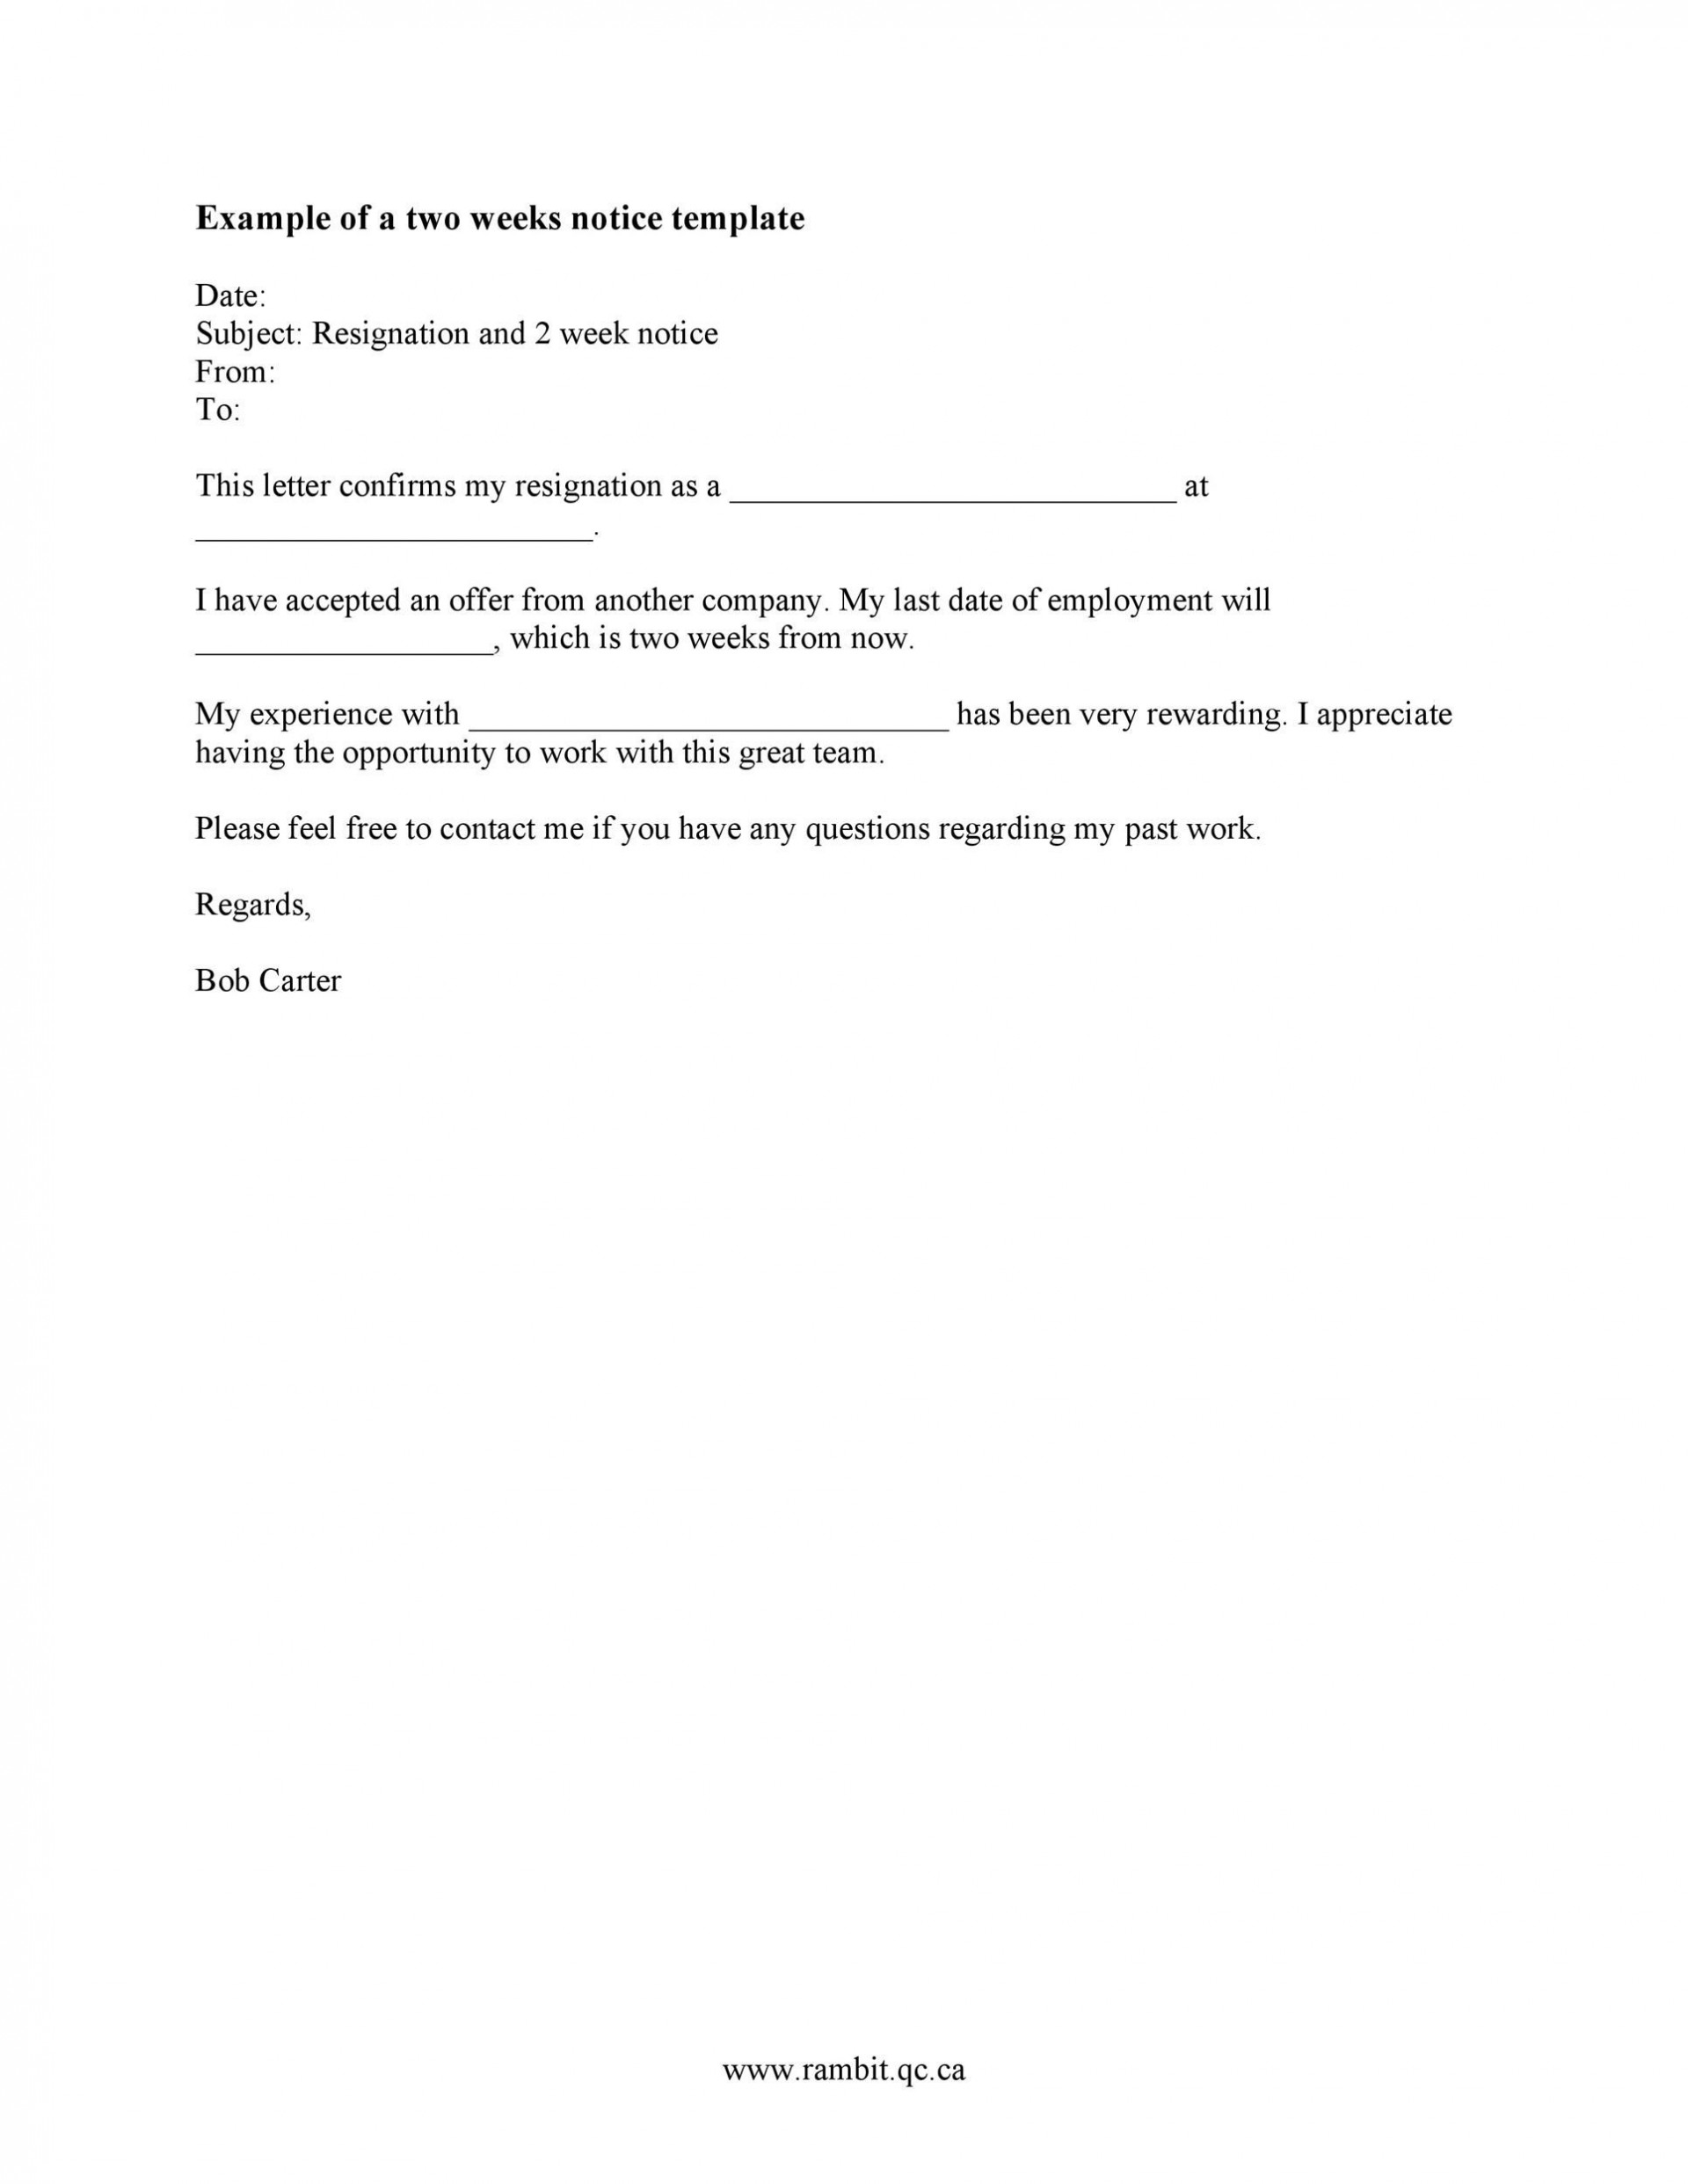 005 Rare Two Week Notice Letter Template Highest Quality  2 Google Doc Word Simple1920